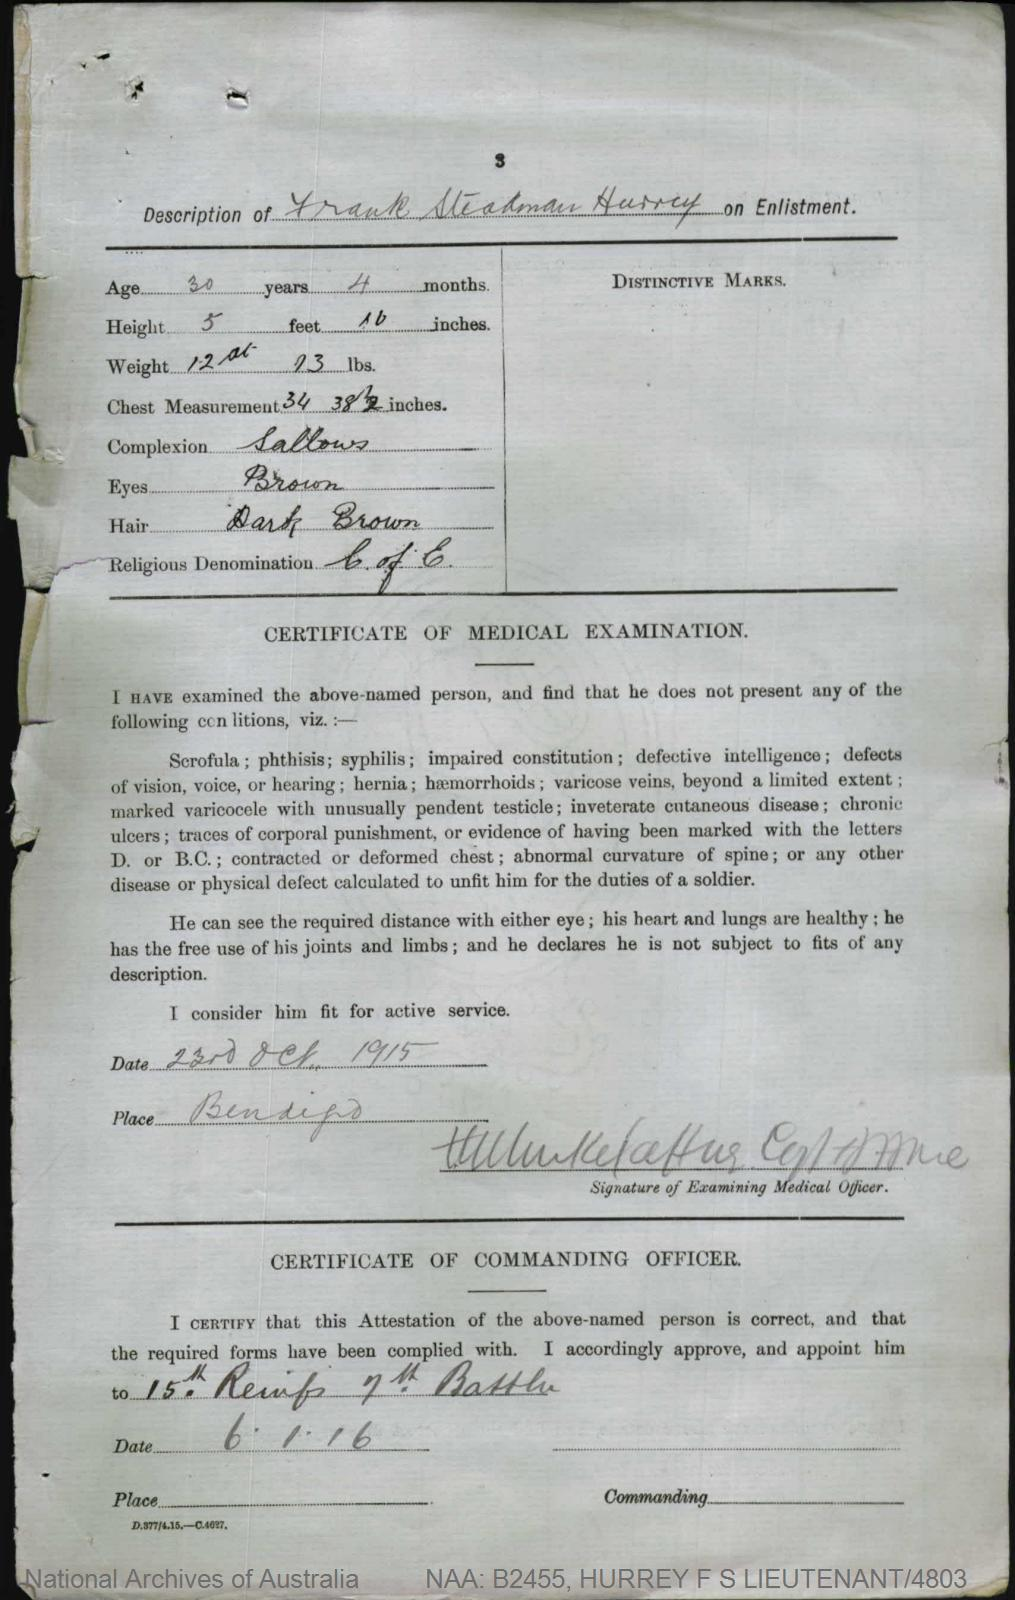 HURREY Frank Steadman : Service Number - Lieutenant/4803 : Place of Birth - Melbourne Vic : Place of Enlistment - Bendigo Vic : Next of Kin - (Father) HURREY Alfred Clarke